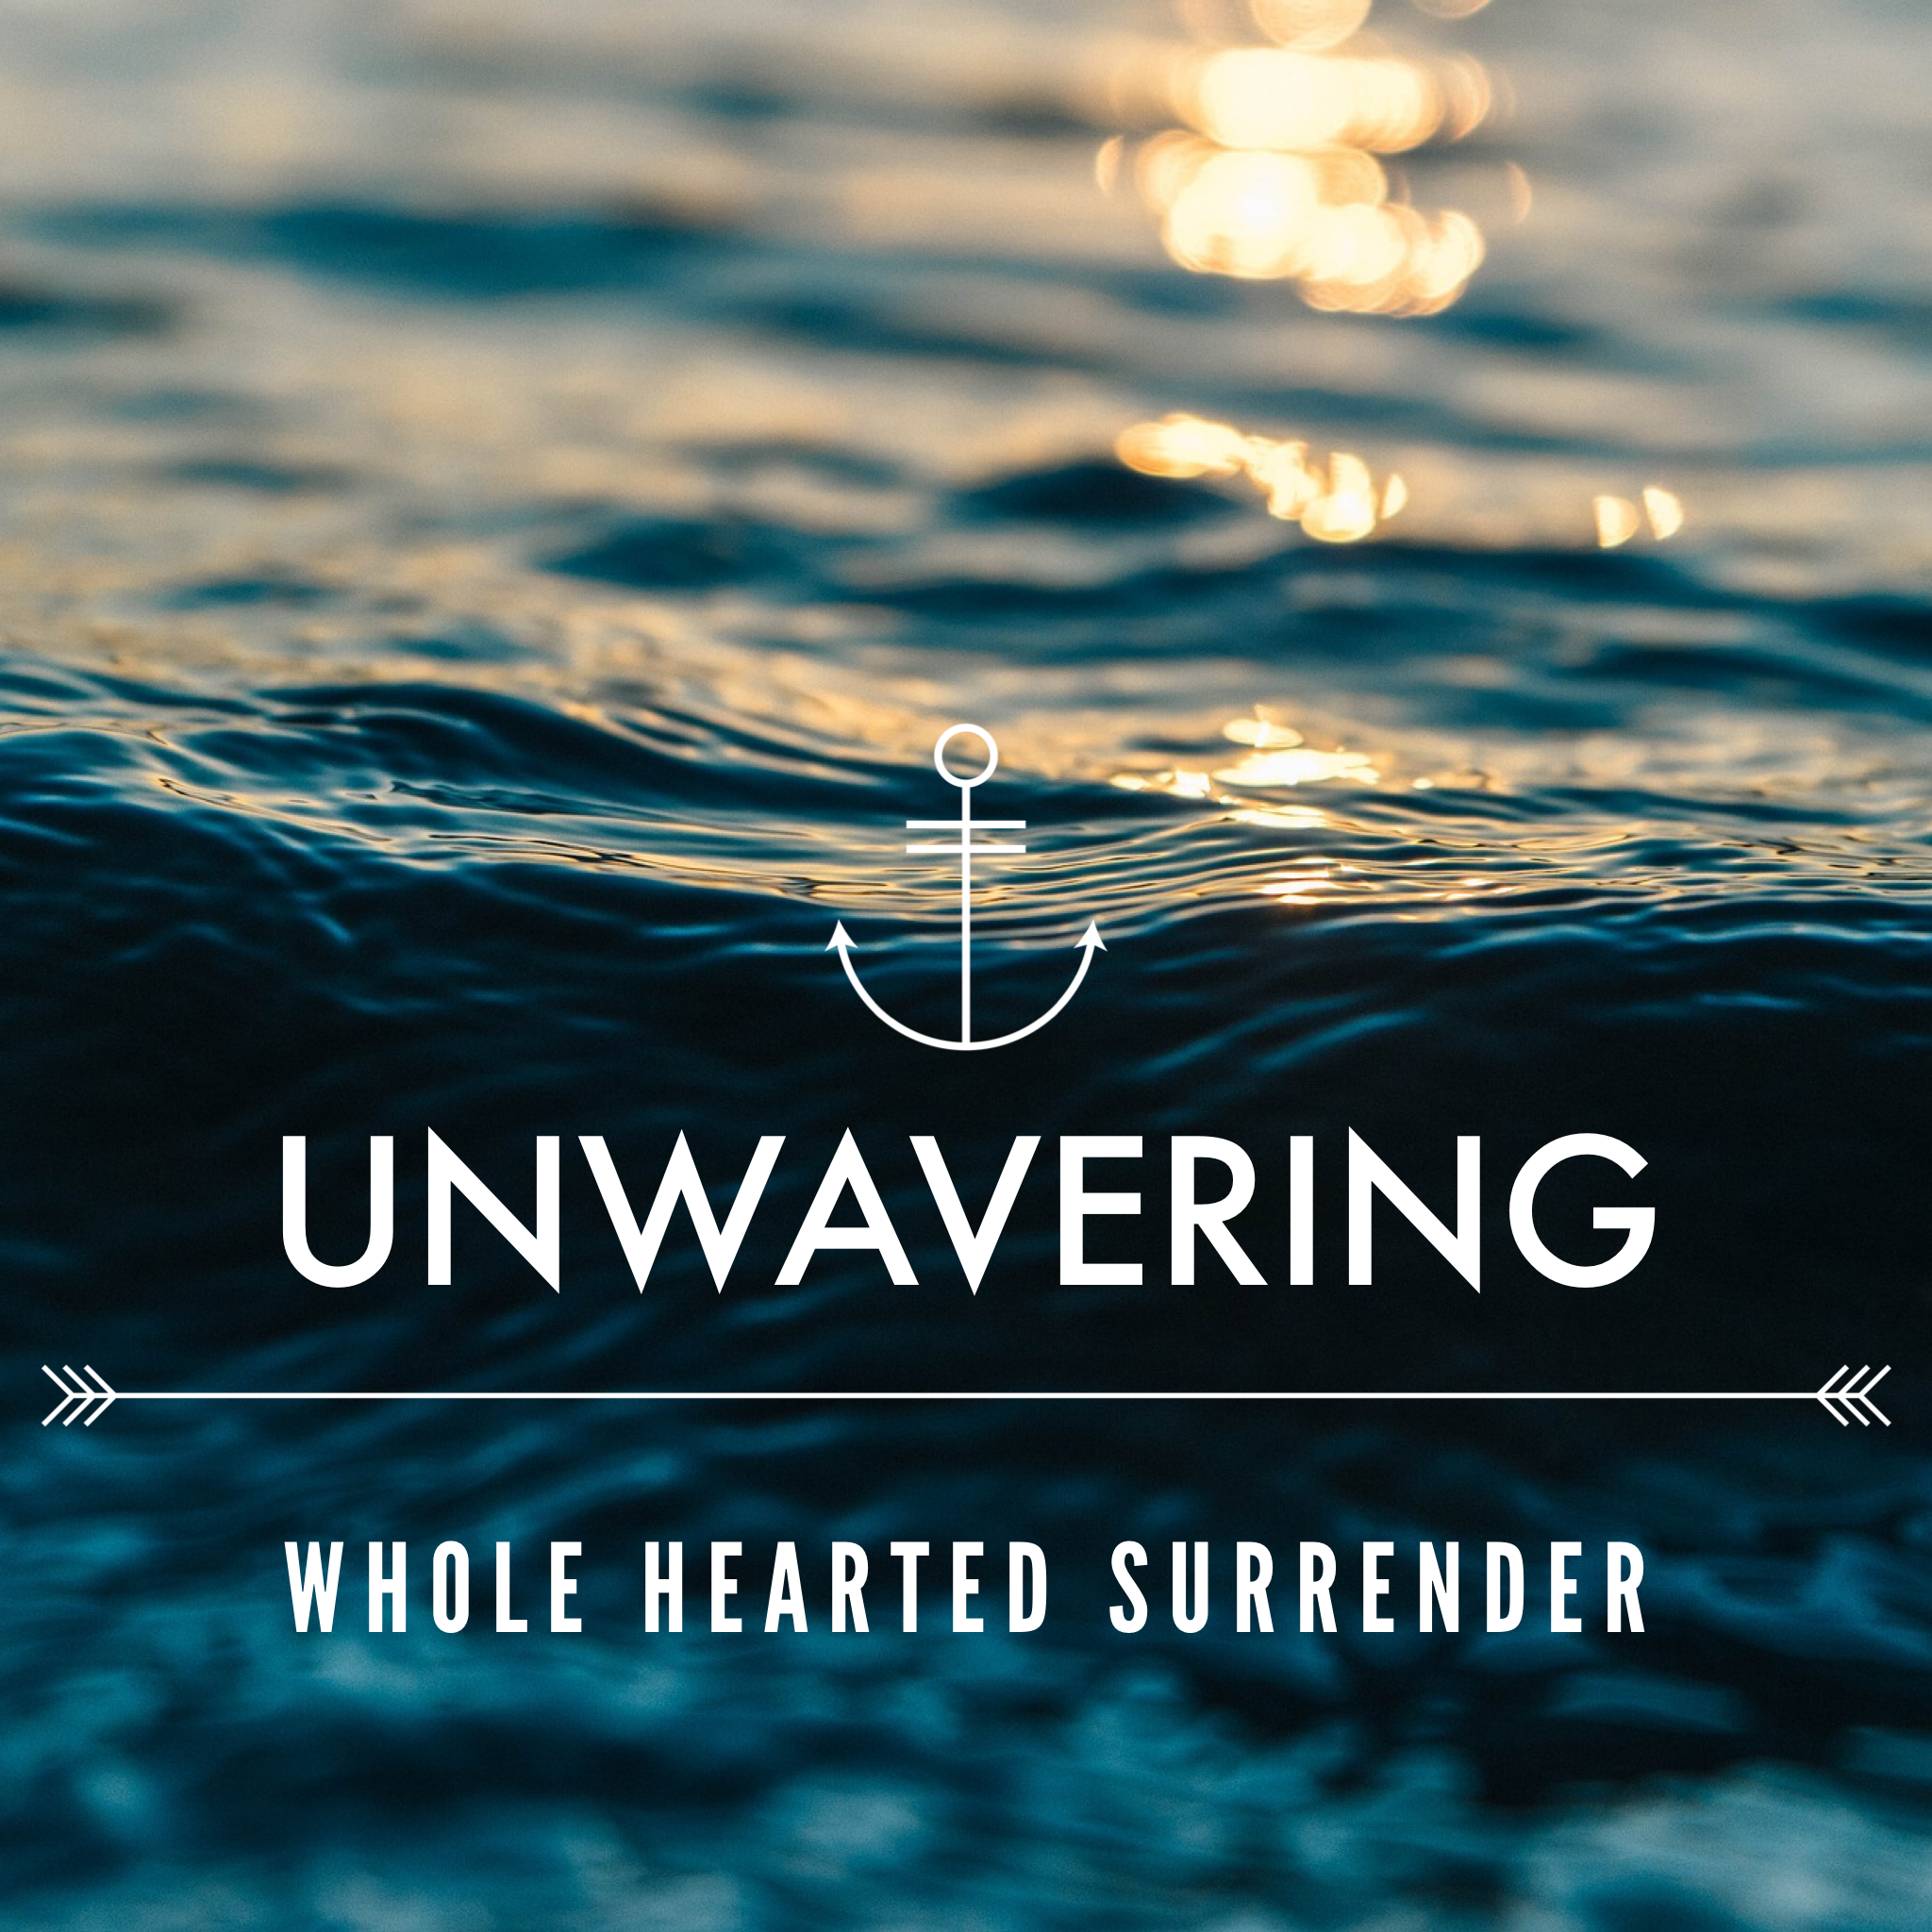 "Our God is an unwavering God. He asks us for whole hearted surrender. - God calls us to a whole-hearted surrender, an all-in, follow-Him-anywhere kind of commitment, an unwavering hope. But we can only be surrendered because He is an unwavering, steadfast God. And the hope we have in His unwavering steadfastness is like an anchor in the waves. ""Let us hold fast the confession of hope without wavering, for He who promised is faithful"" Heb 10:23 ""We have this hope as a sure and steadfast anchor of the soul"" Heb 6:19"